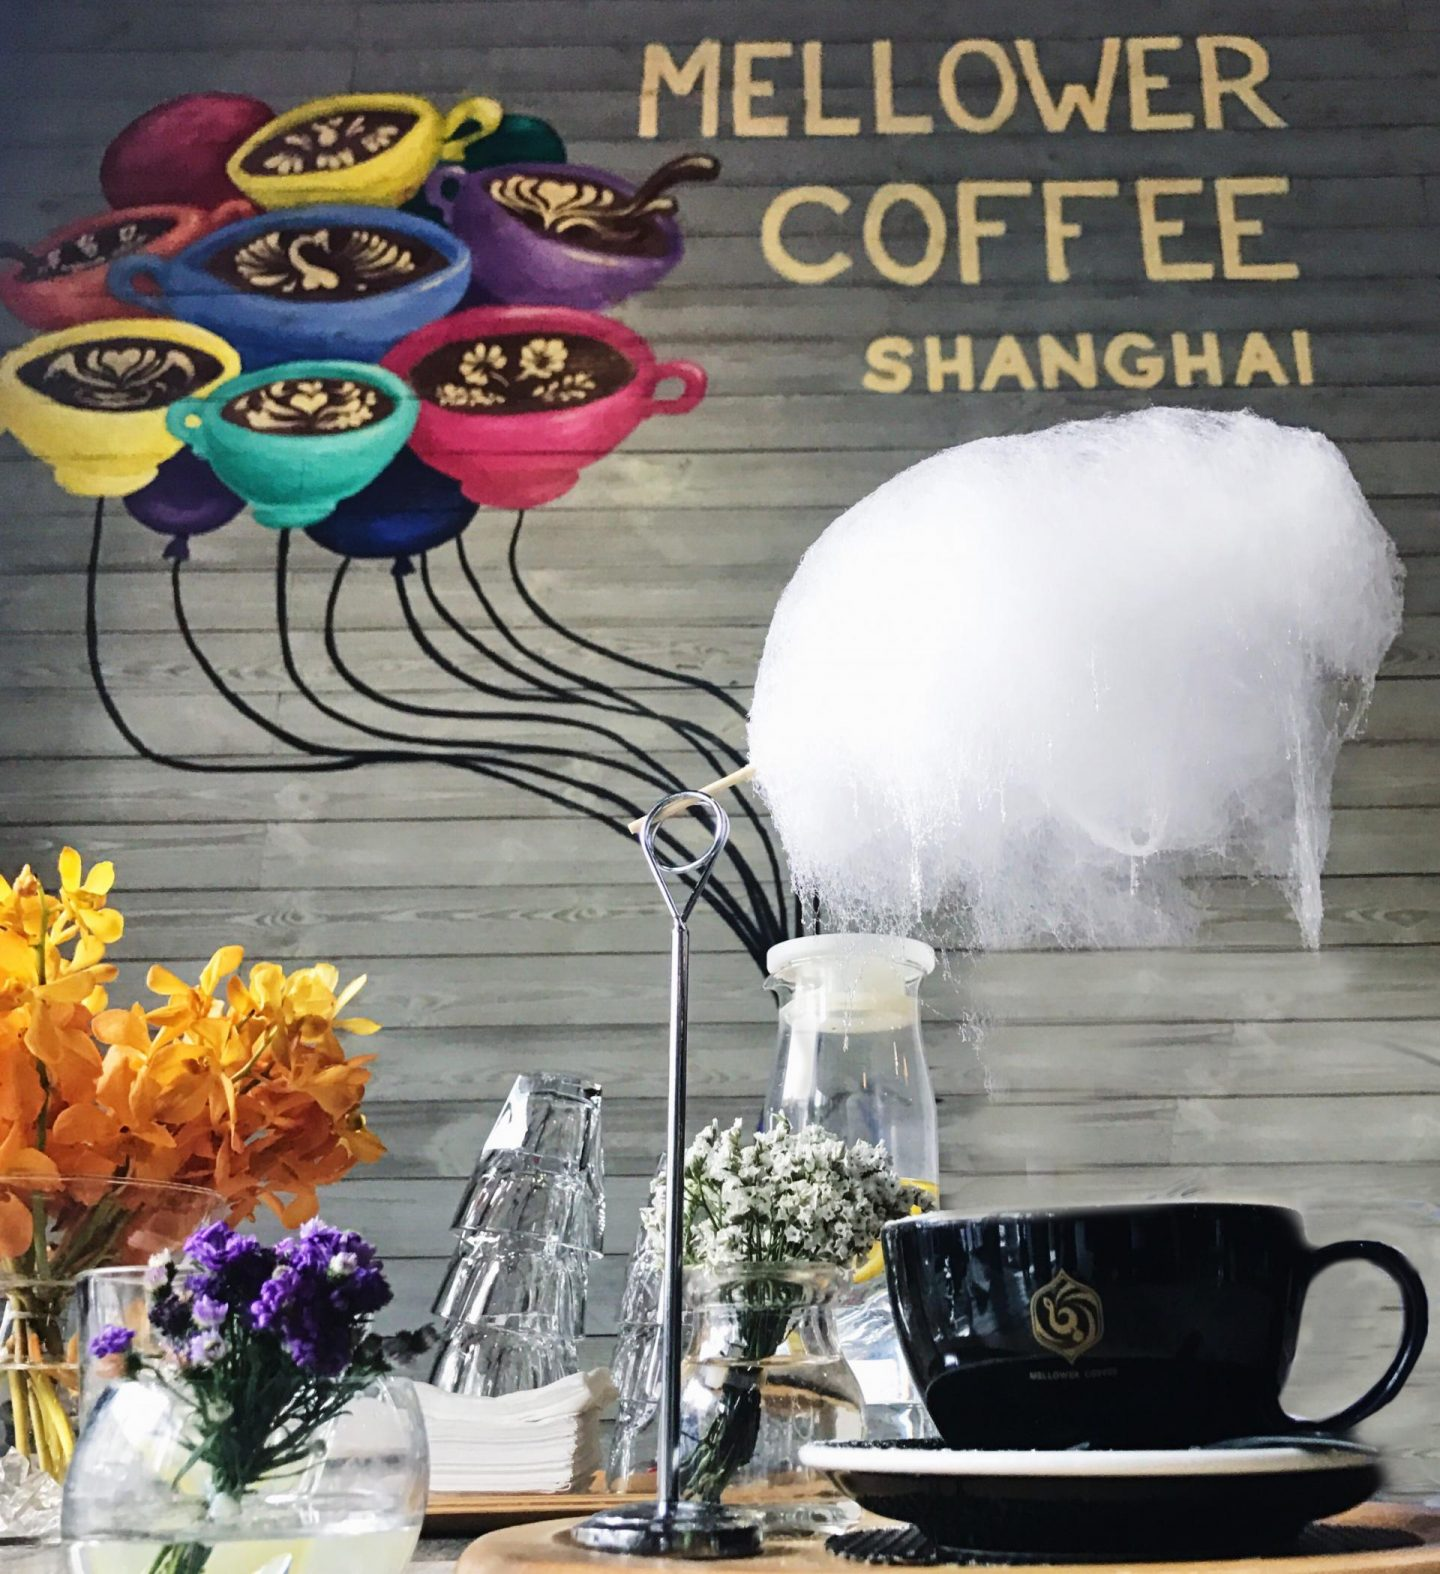 Mellower Coffee in Shanghai